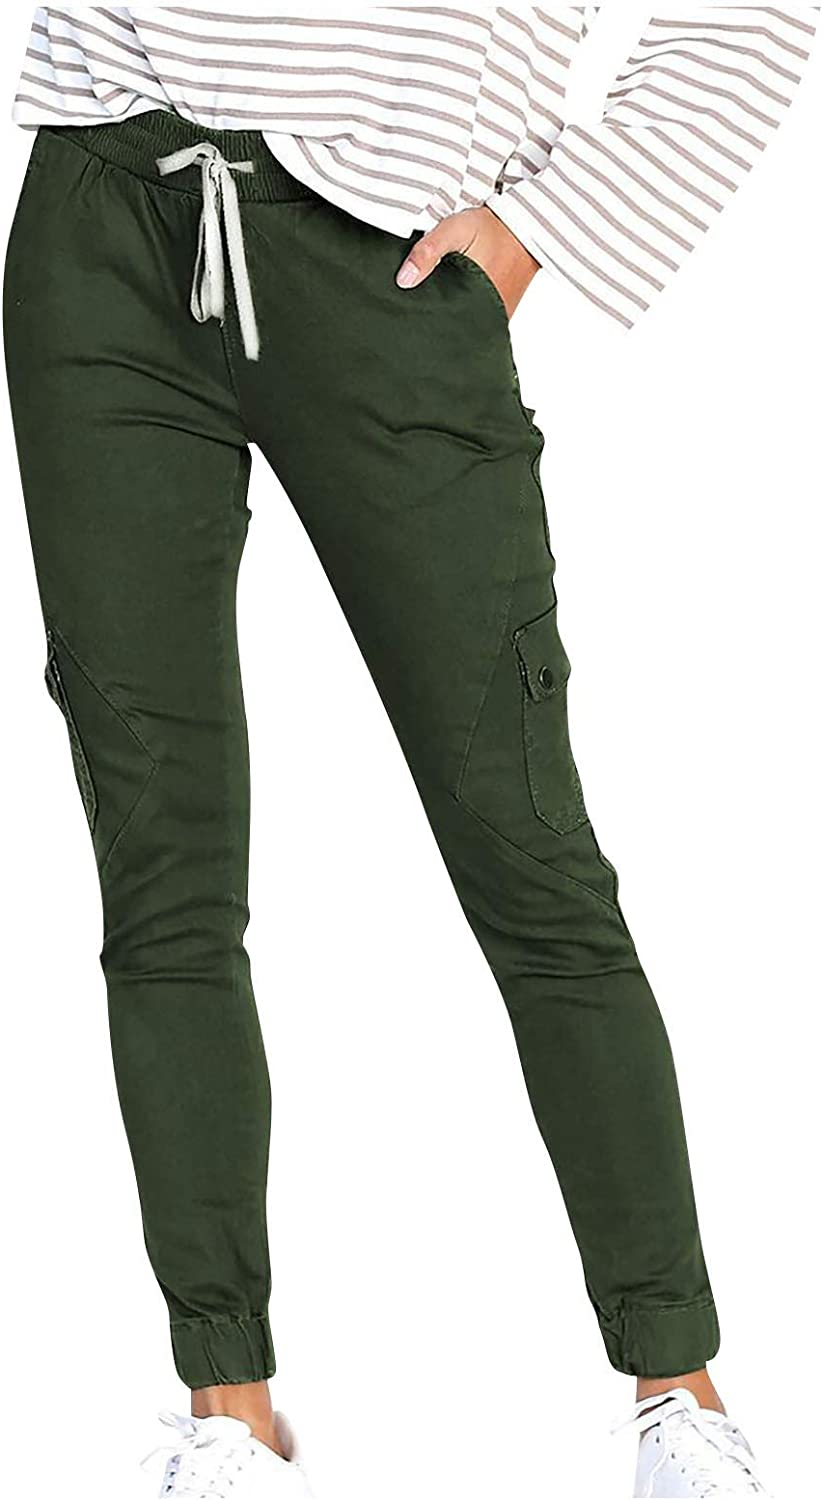 Women's New item Multi-pocket Shrinkage Casual Waisted Legging OFFicial mail order Pants High